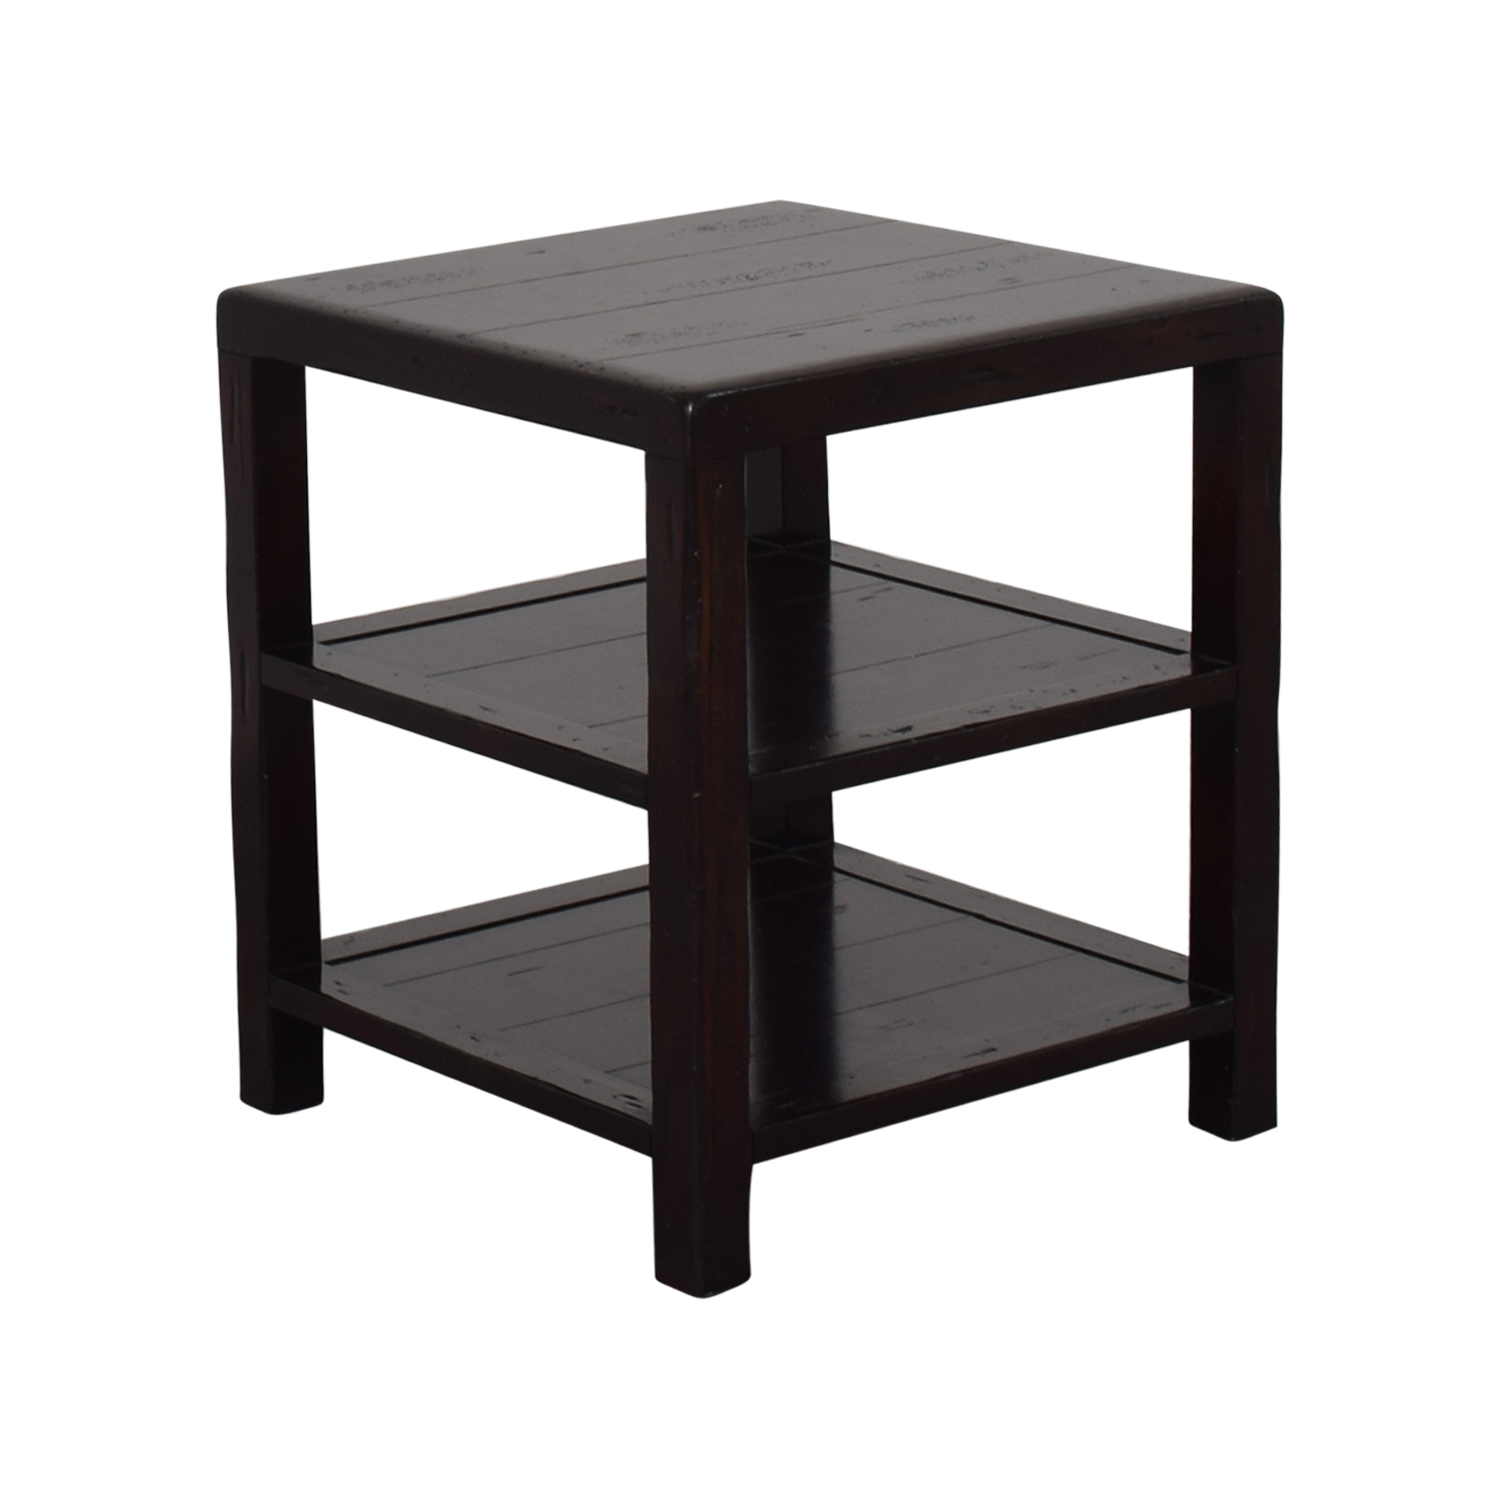 90 Off Pottery Barn Pottery Barn Square Side Table Tables